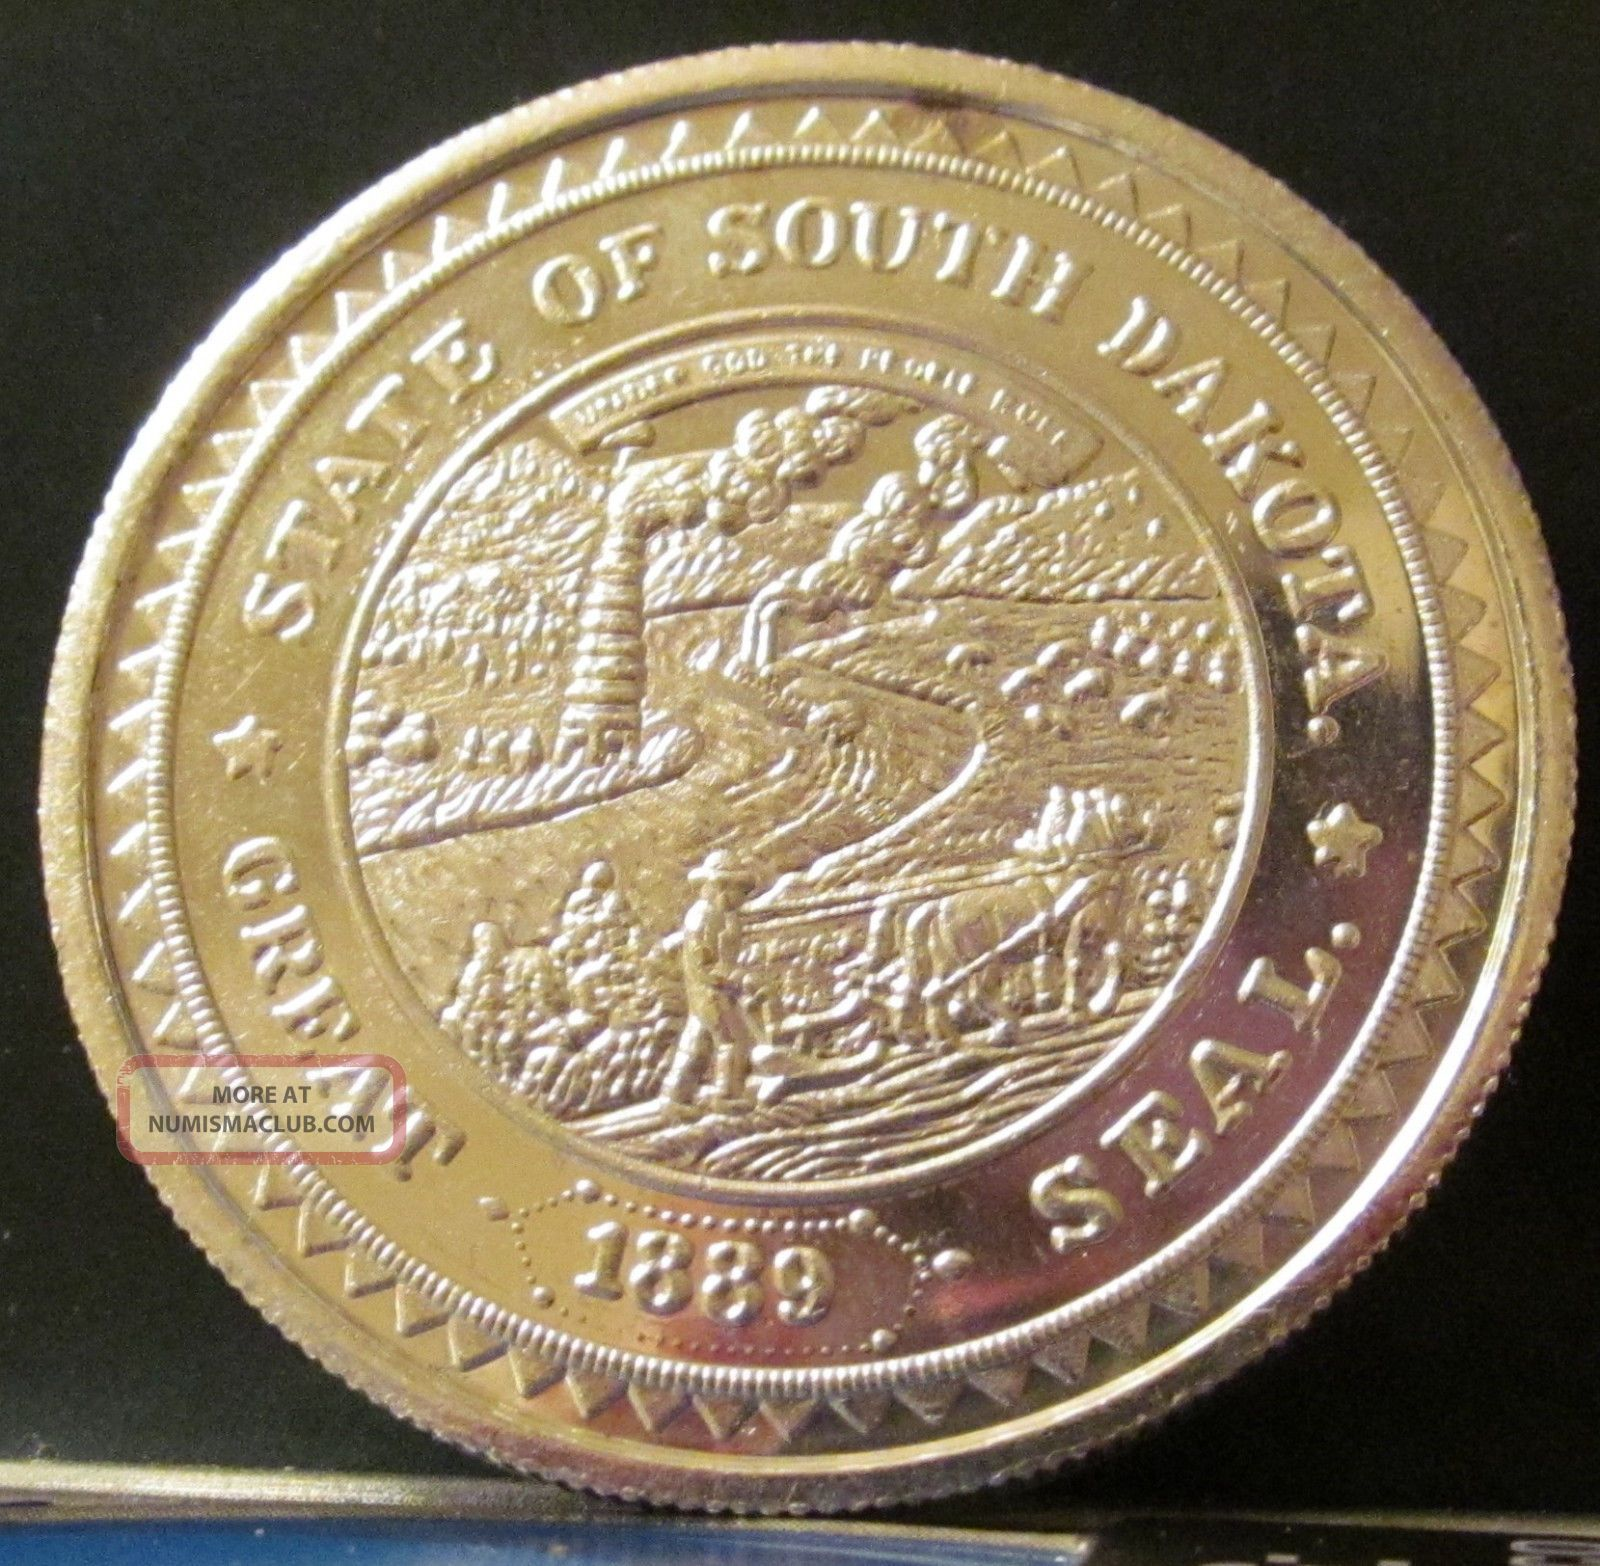 1987 one troy ounce silver south dakota round coin 999, 999 fine silver coin value